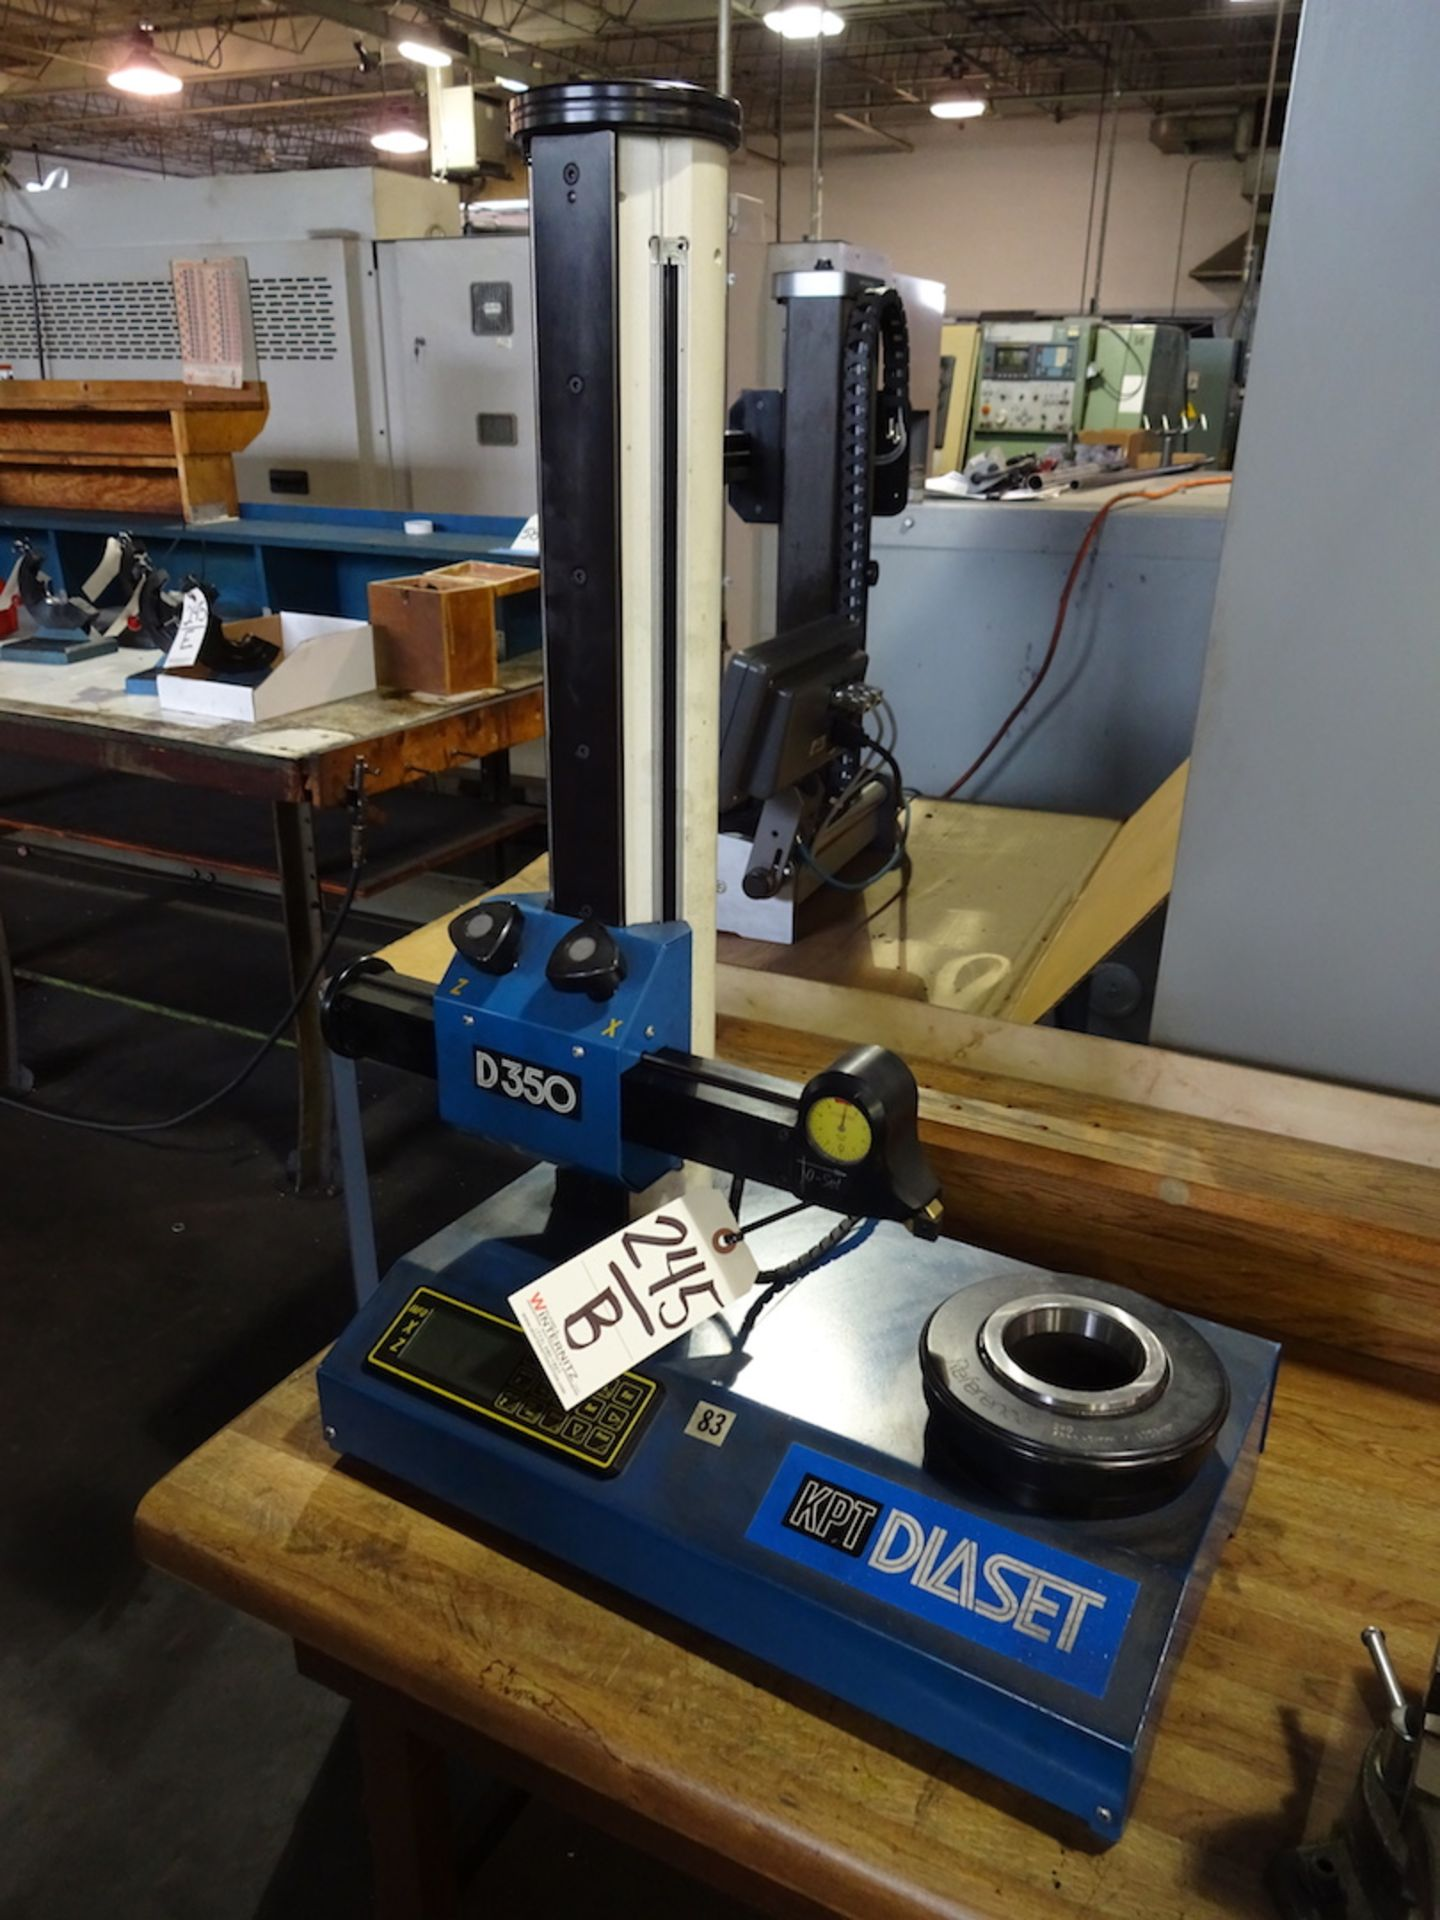 Lot 245B - KPT Diaset Model D350 Tool Measuring System (computer inoperable)